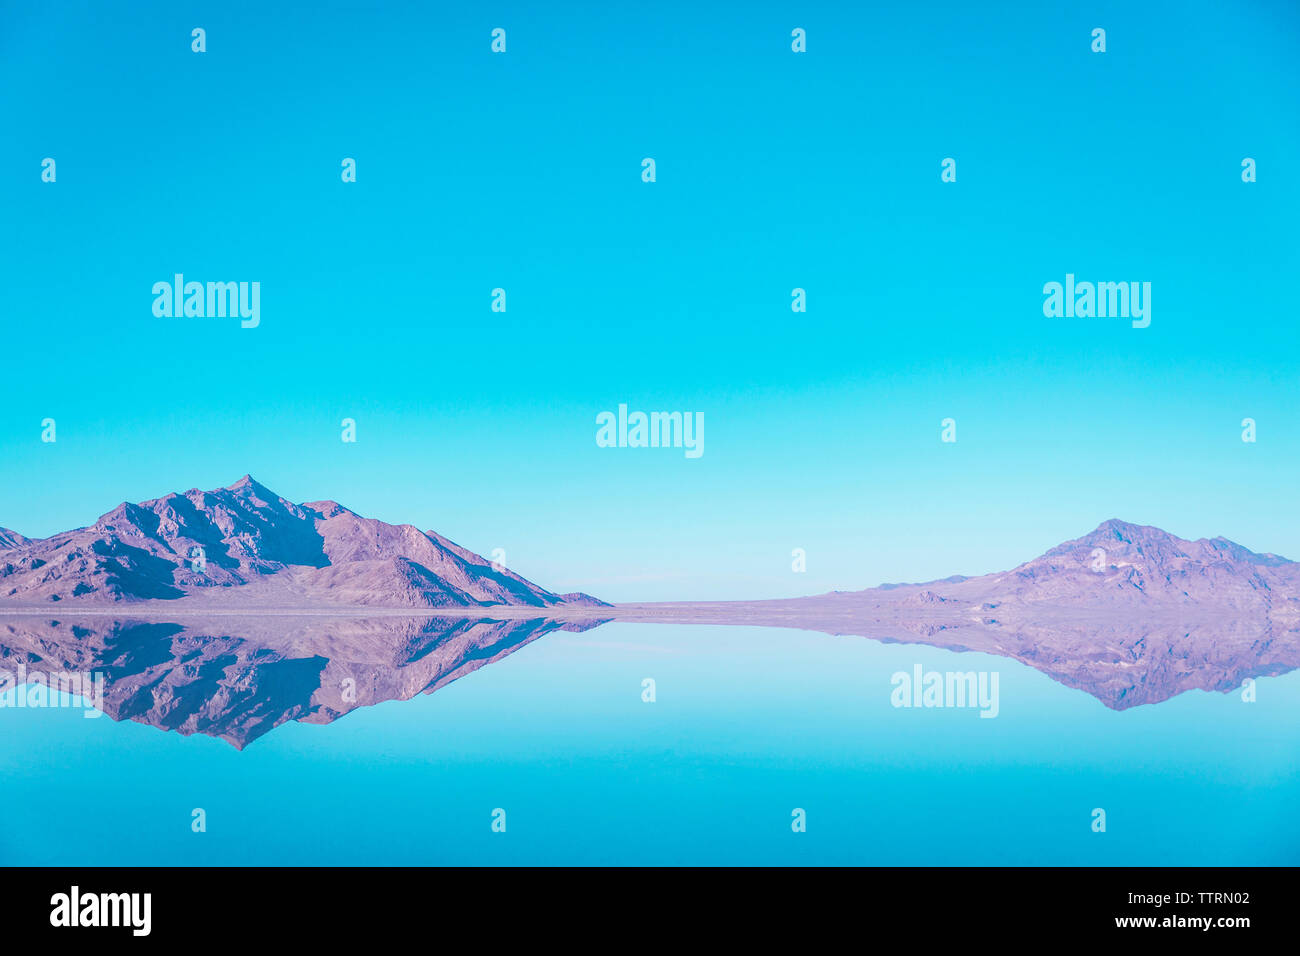 Scenic view of mountains reflecting in lake at Bonneville Salt Flats against blue sky Stock Photo